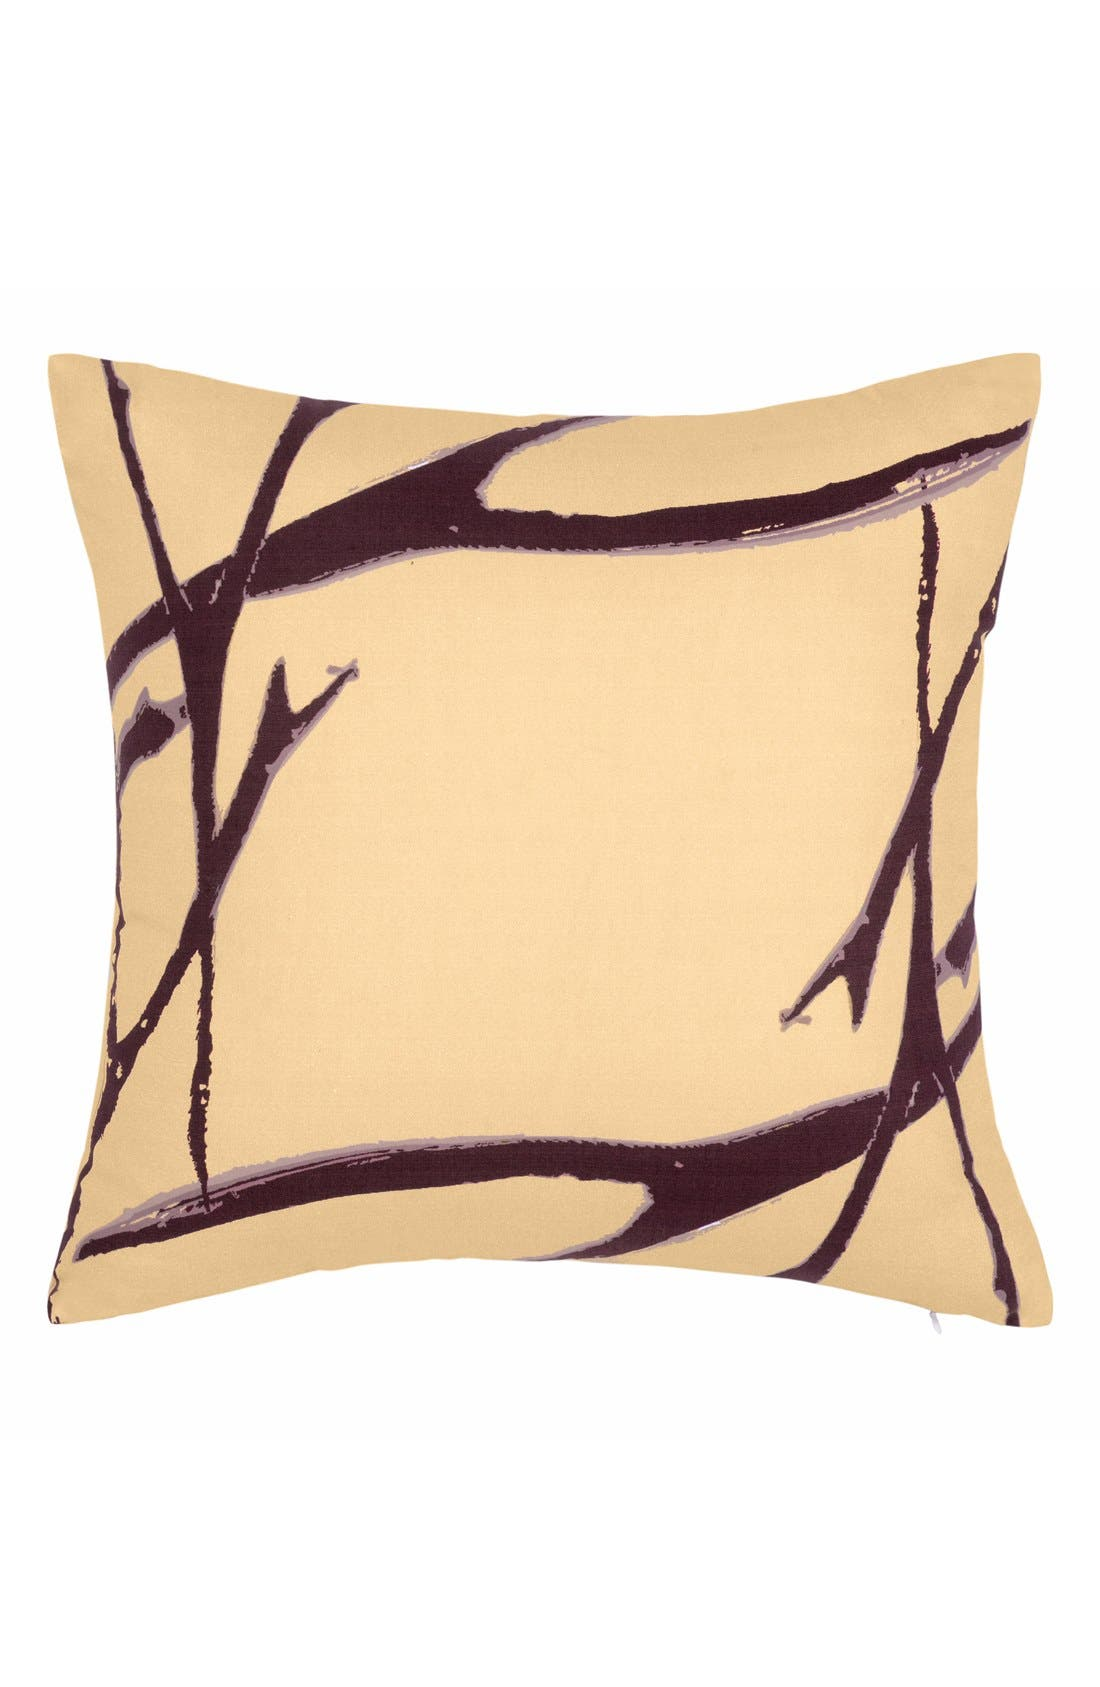 Main Image - kensie 'Blossom Branches' Pillow (Online Only)